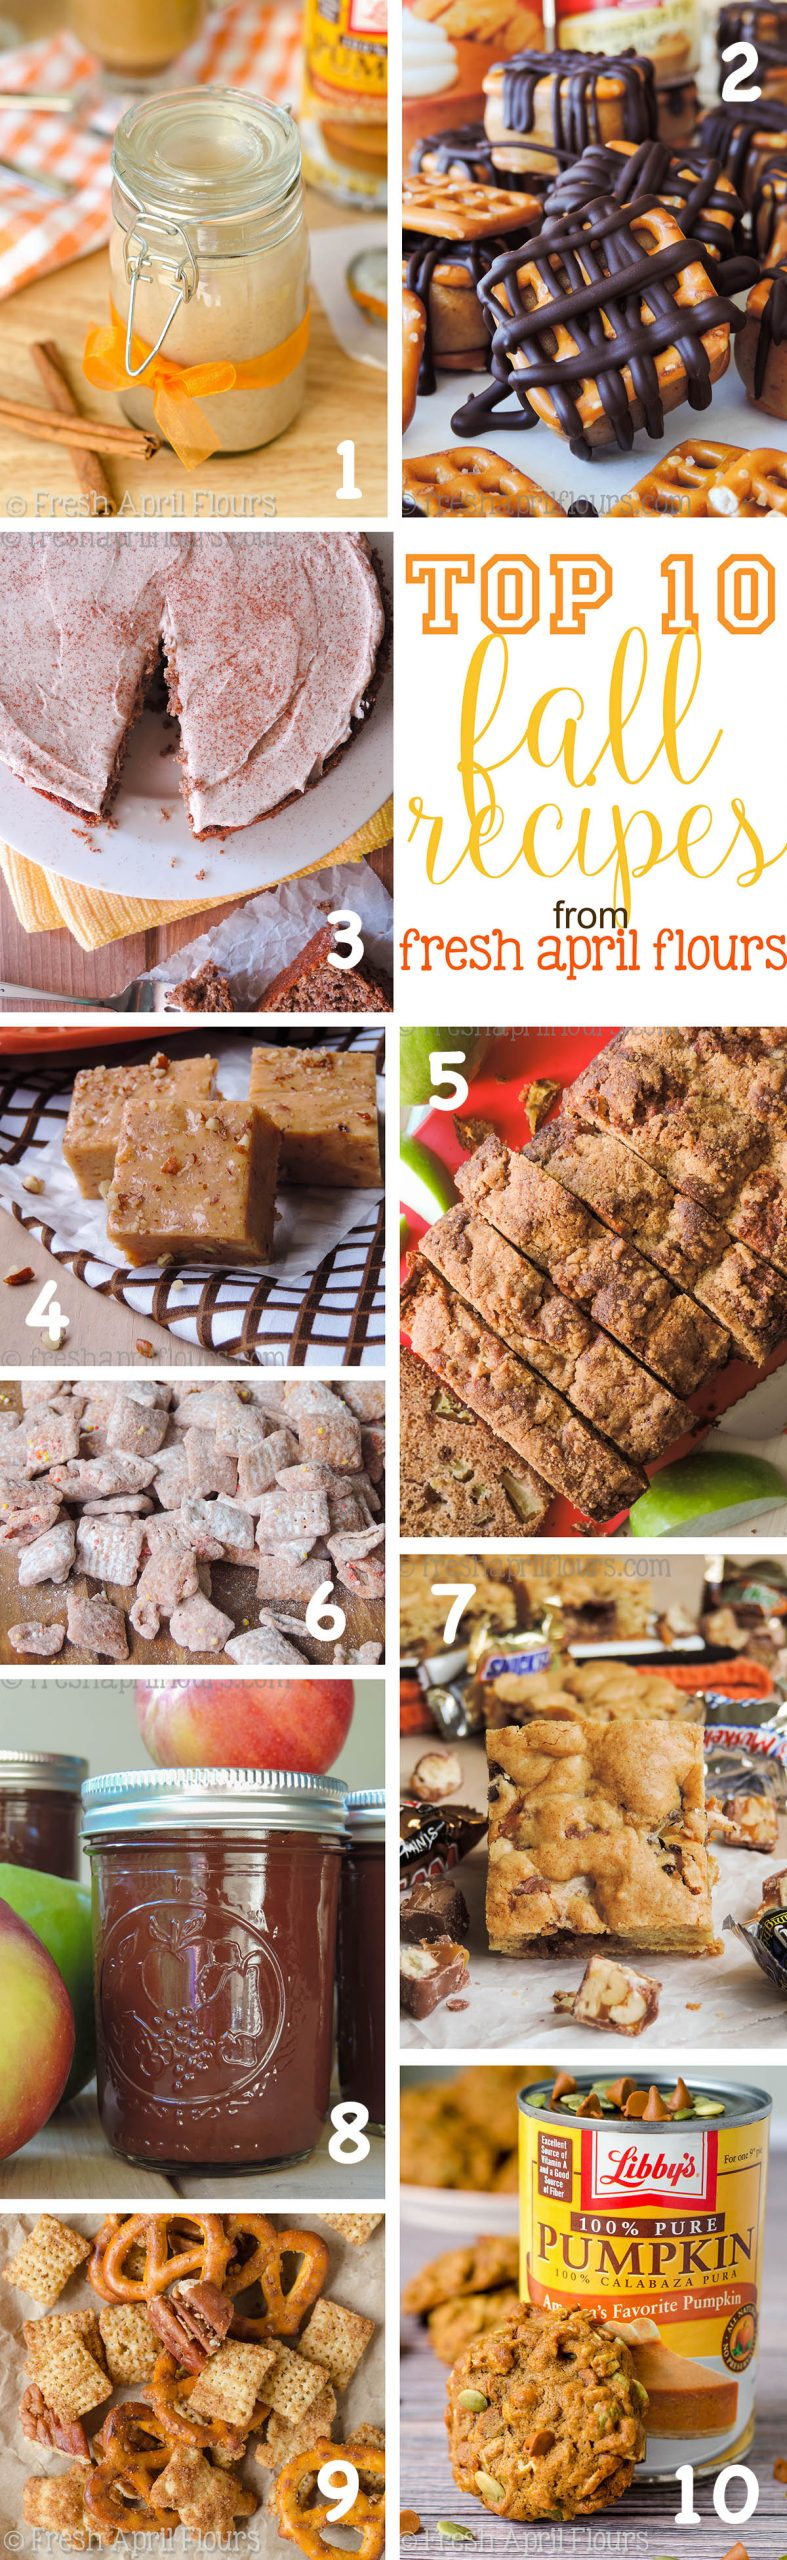 Top 10 Fall Recipes from Fresh April Flours